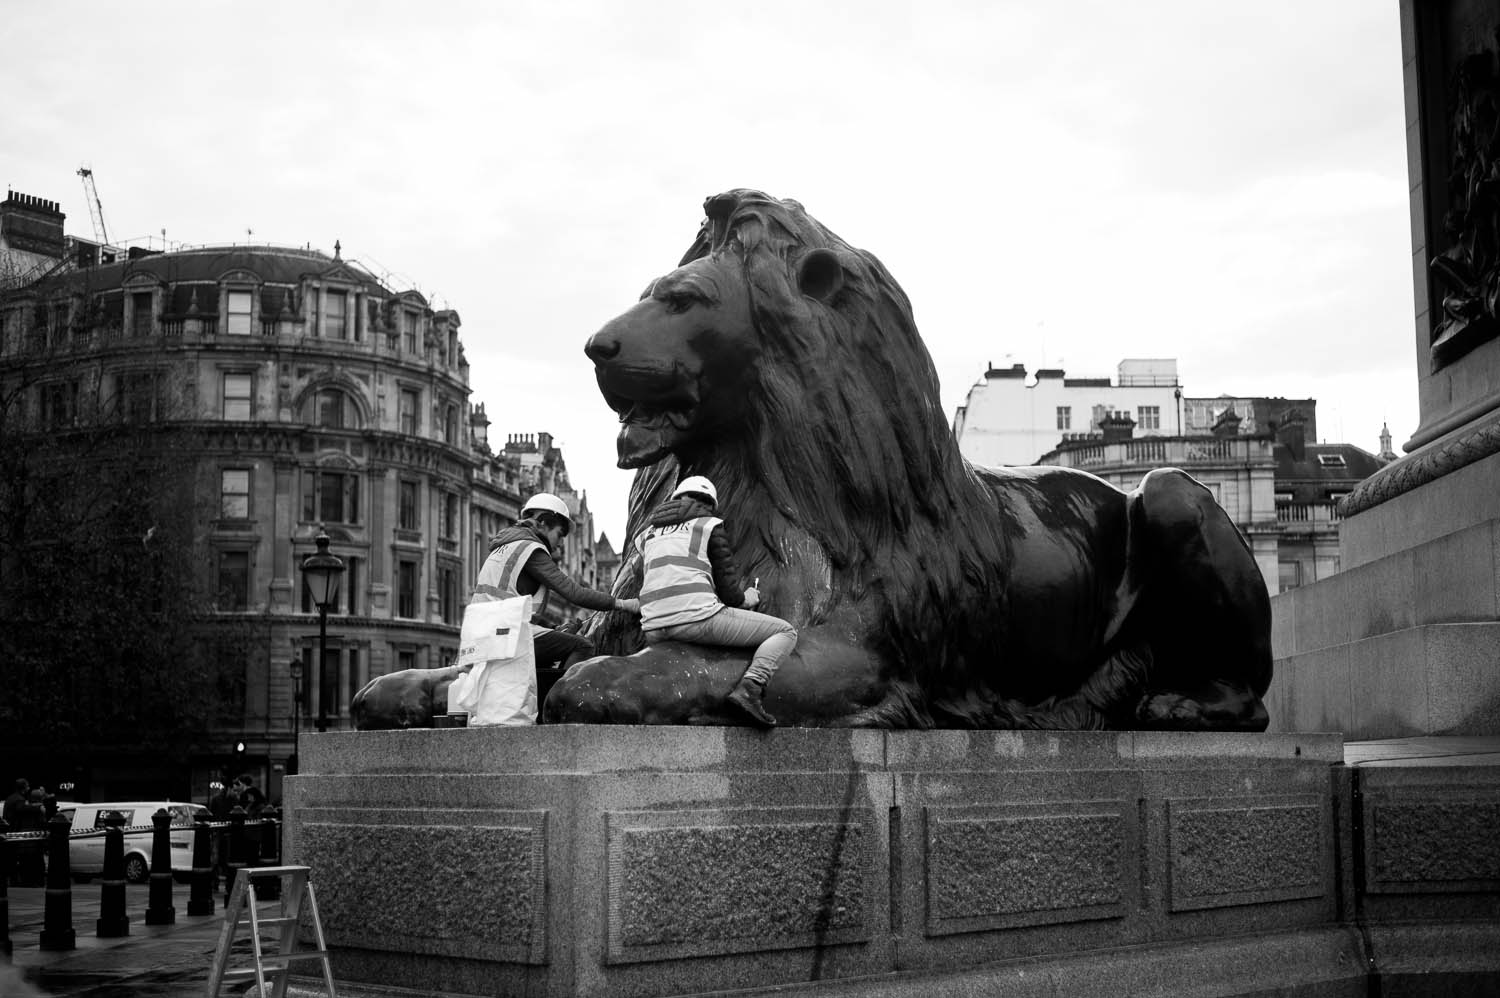 Workers scrub Lion statues clean in London